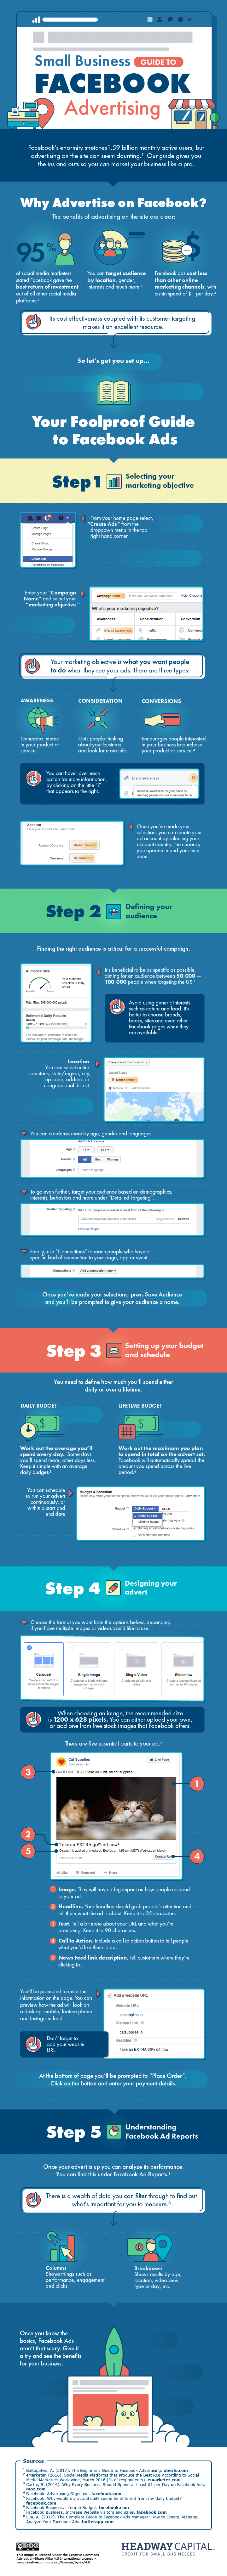 How to Advertise on Facebook: A Guide for Small Businesses - Infographic